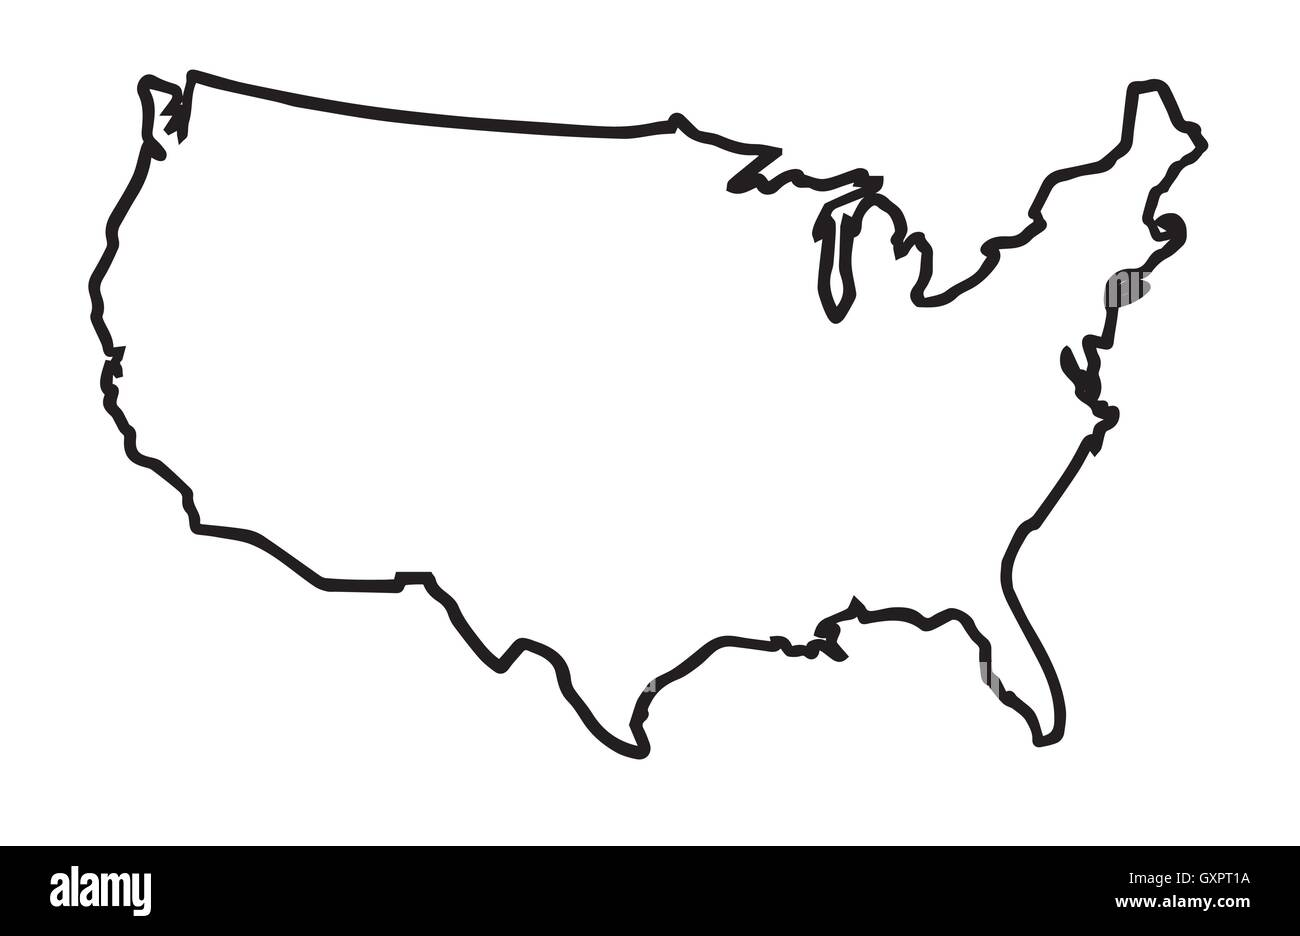 A broader outline map of the United States of America over a white